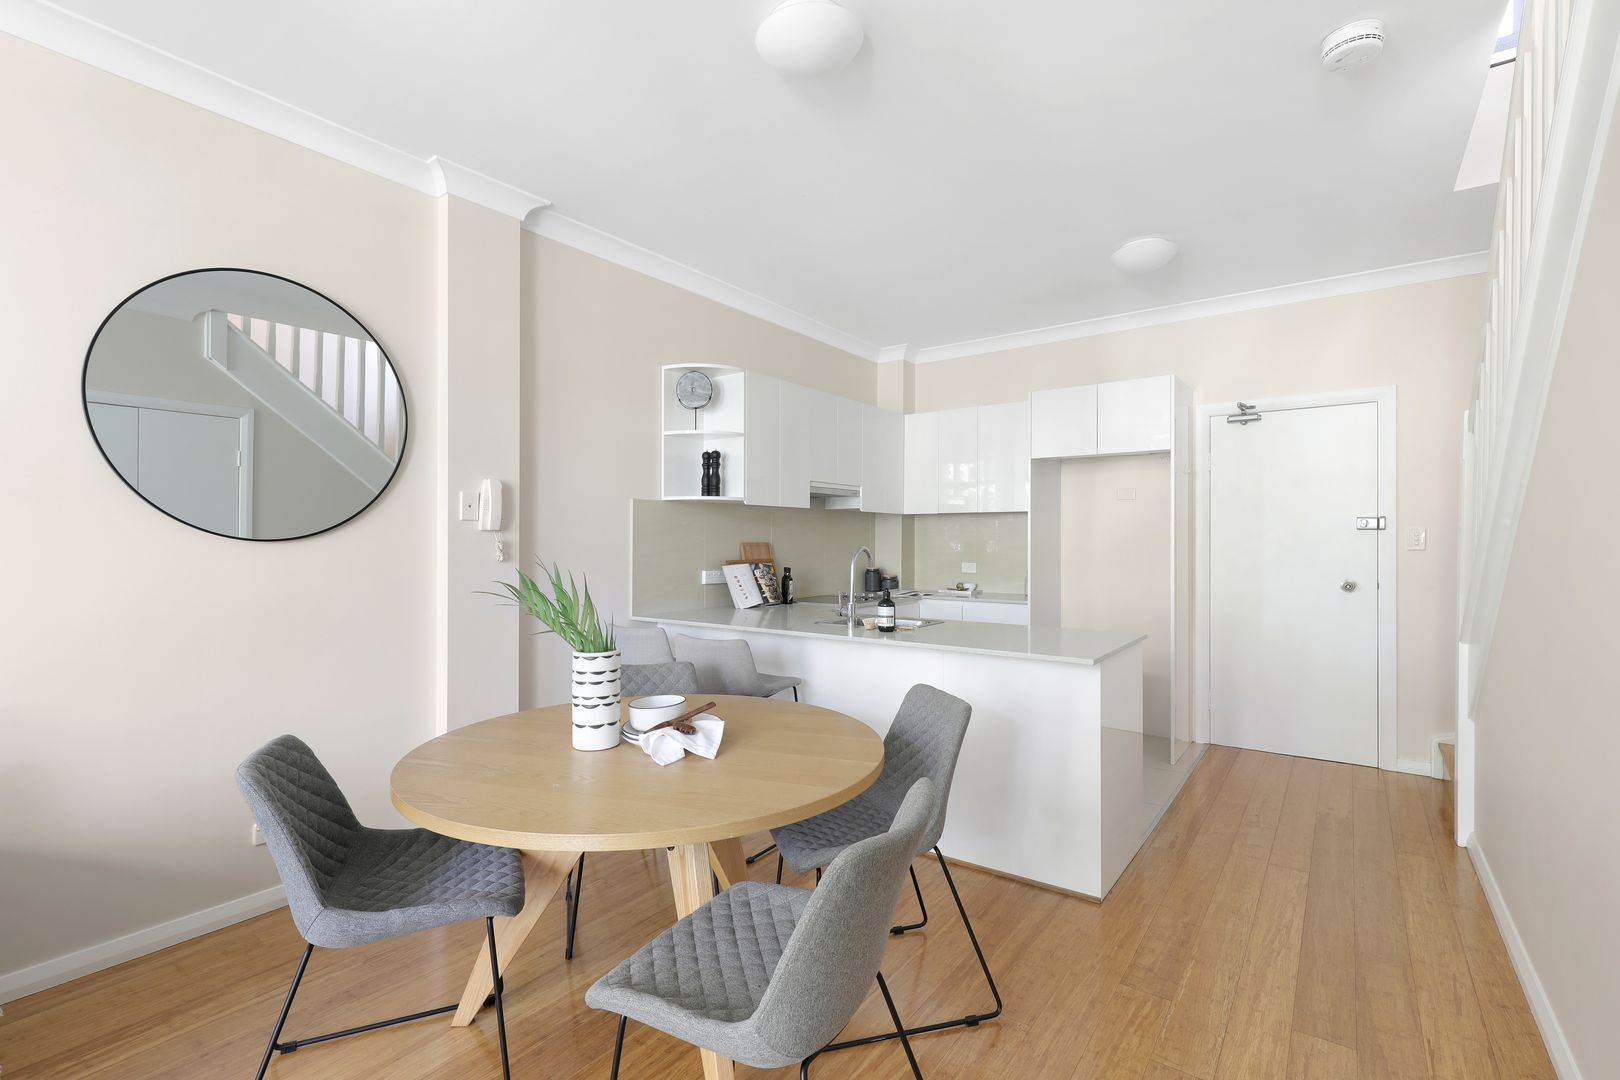 20/14-16 O'Connor St, Chippendale NSW 2008, Image 2